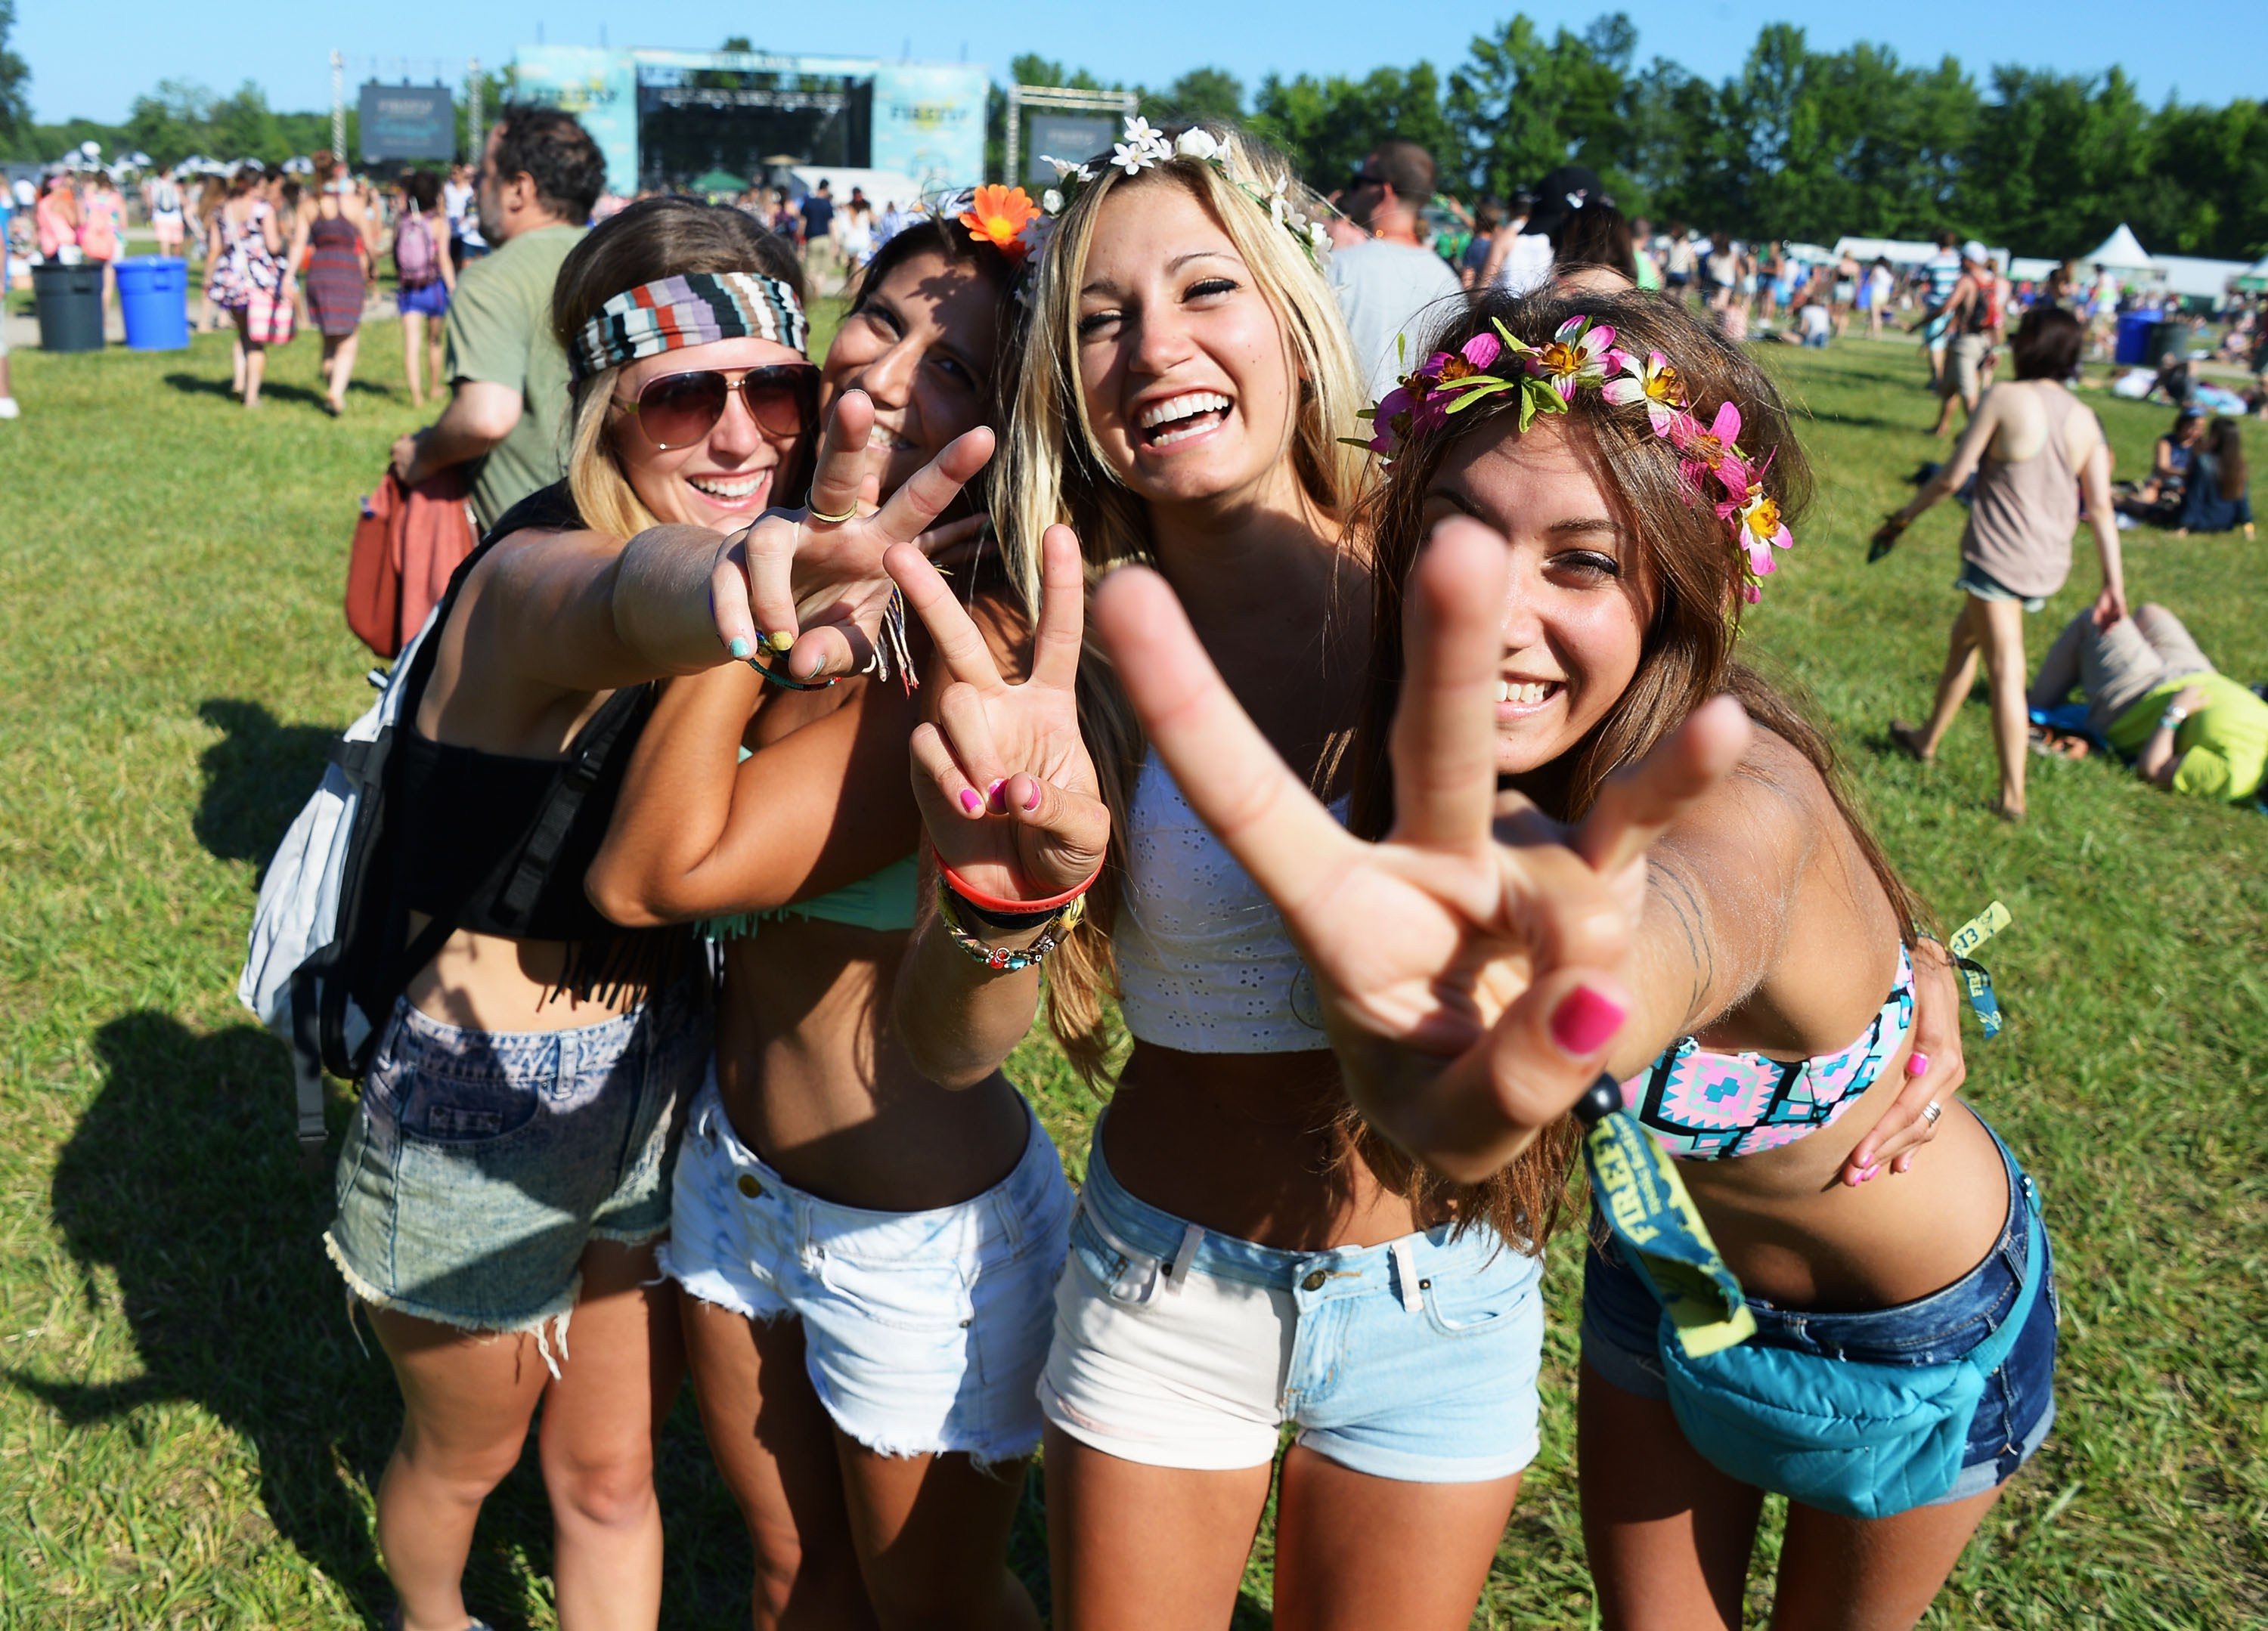 people with jewelry in the music festival